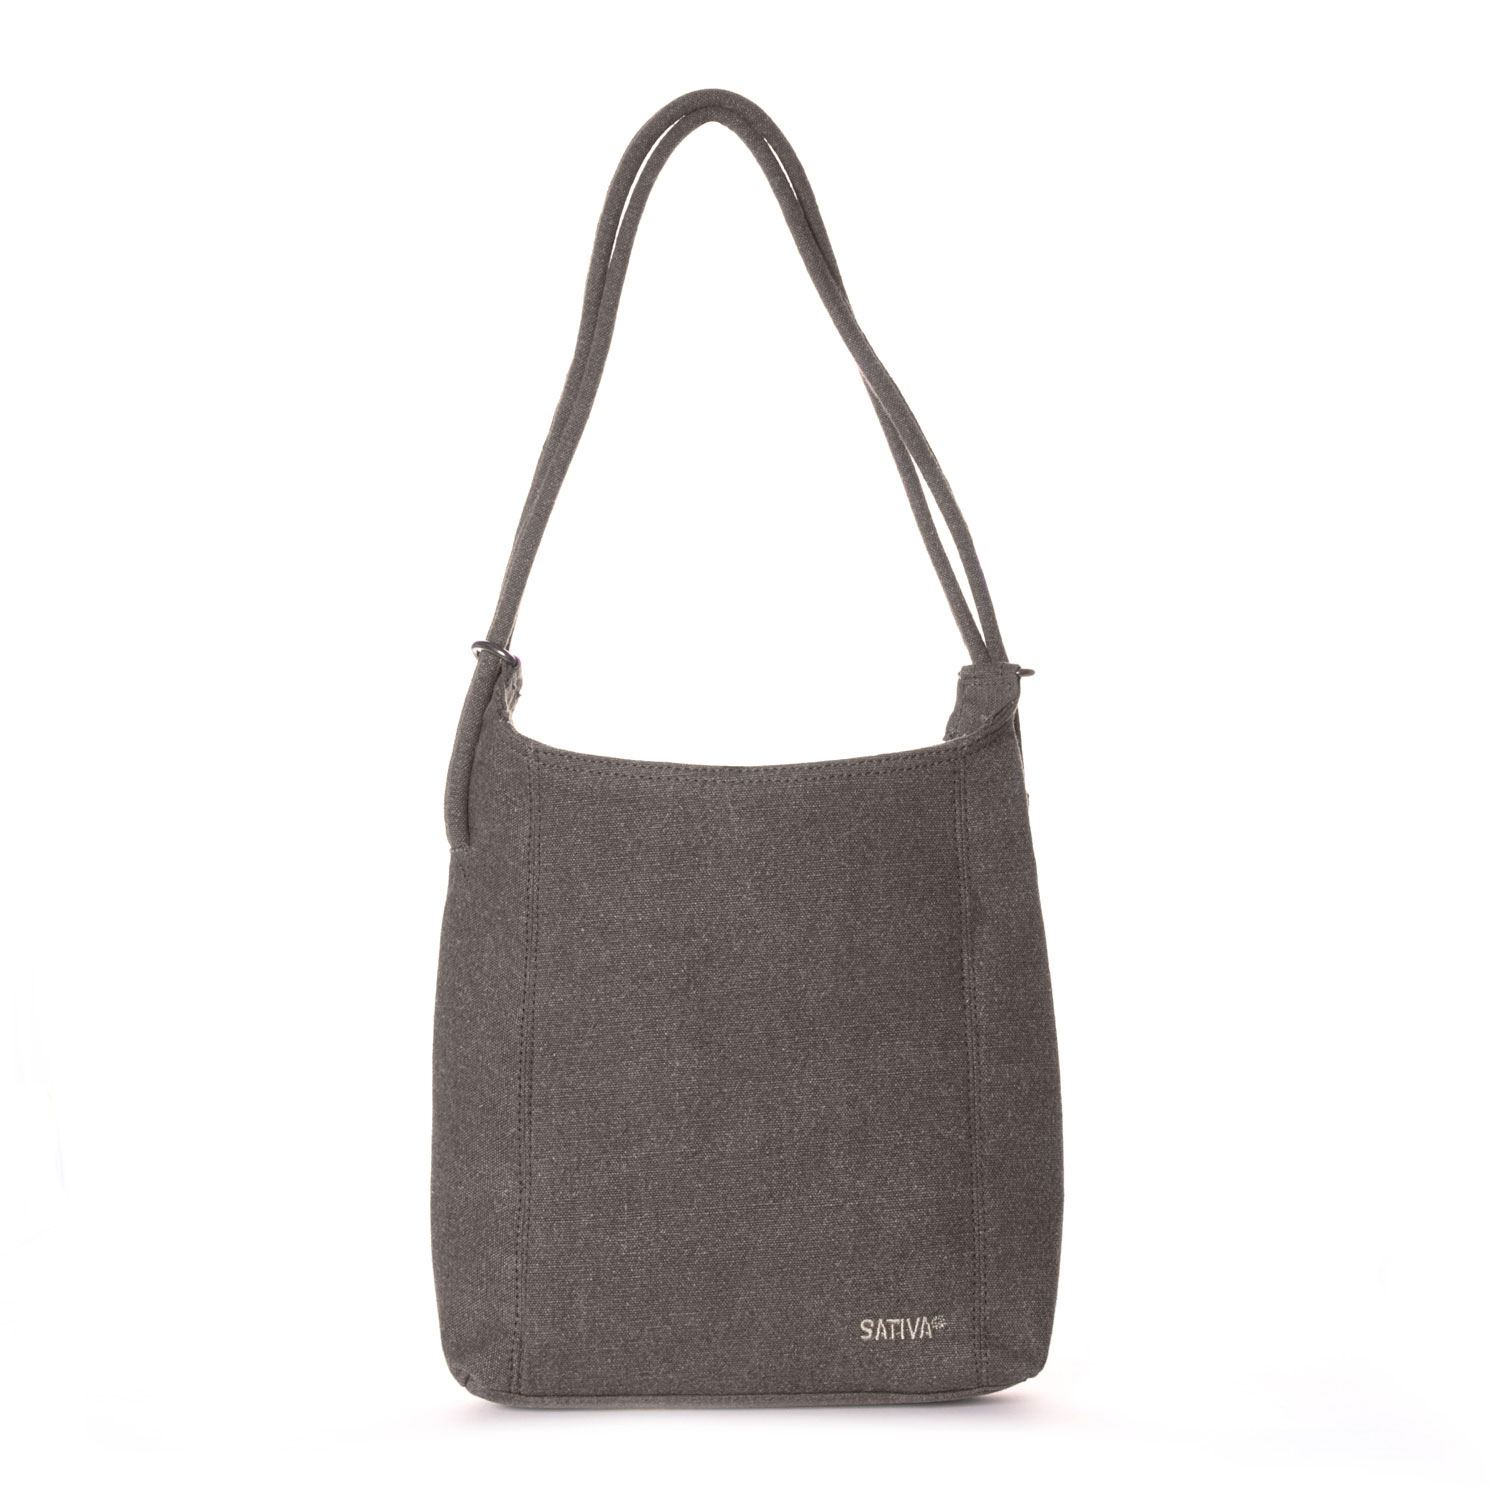 Sativa Hemp Small Handbag